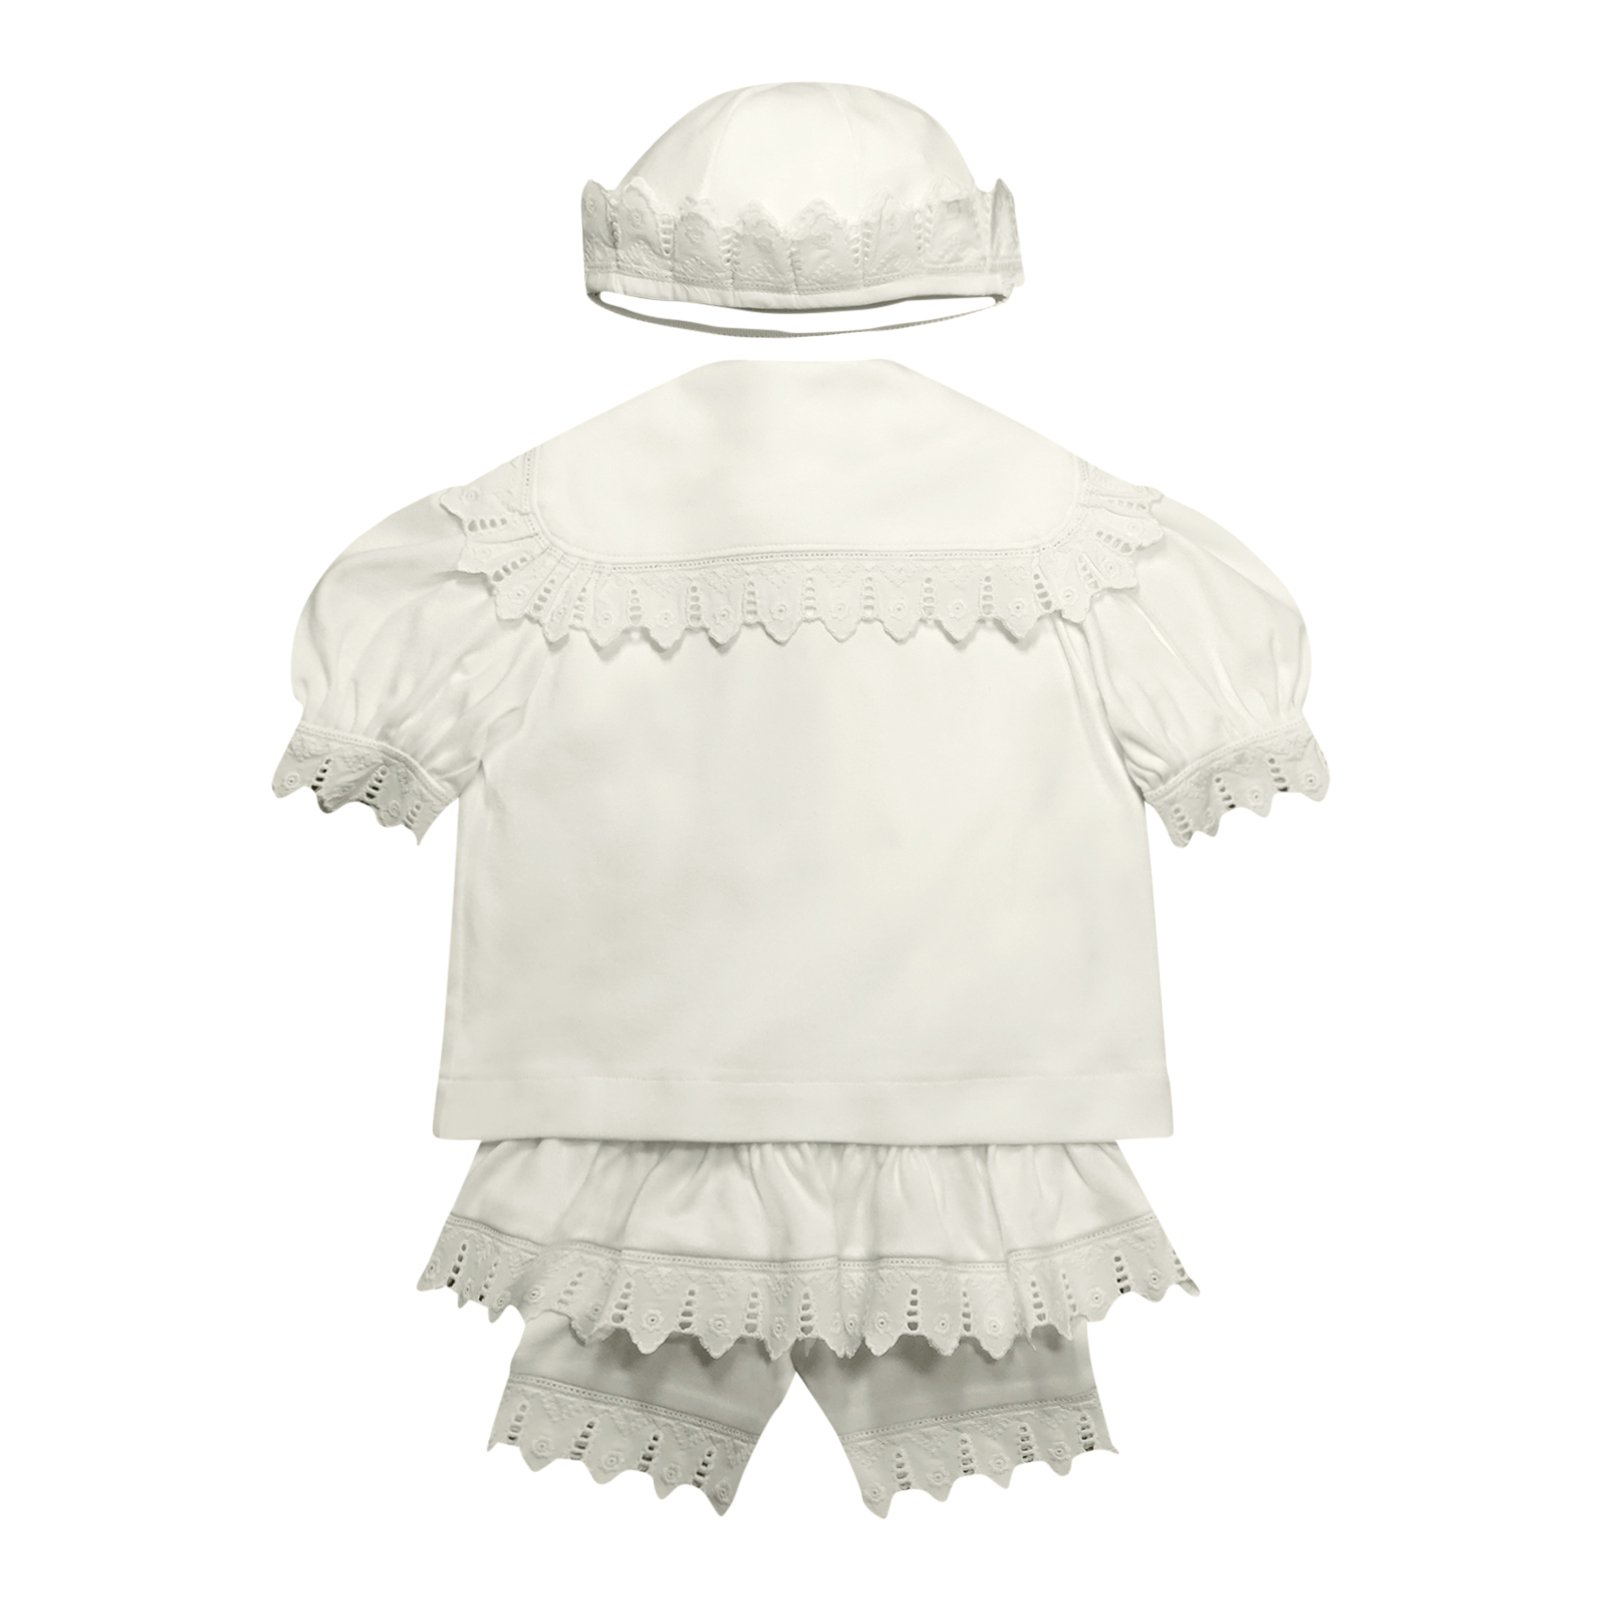 Victorian Organics Baby Girl Sailor Set 4 Piece Organic Cotton Knit and Eyelet Lace Trim Jacket Hat Dress and Bloomers (NB 0-3 months) by Victorian Organics (Image #2)